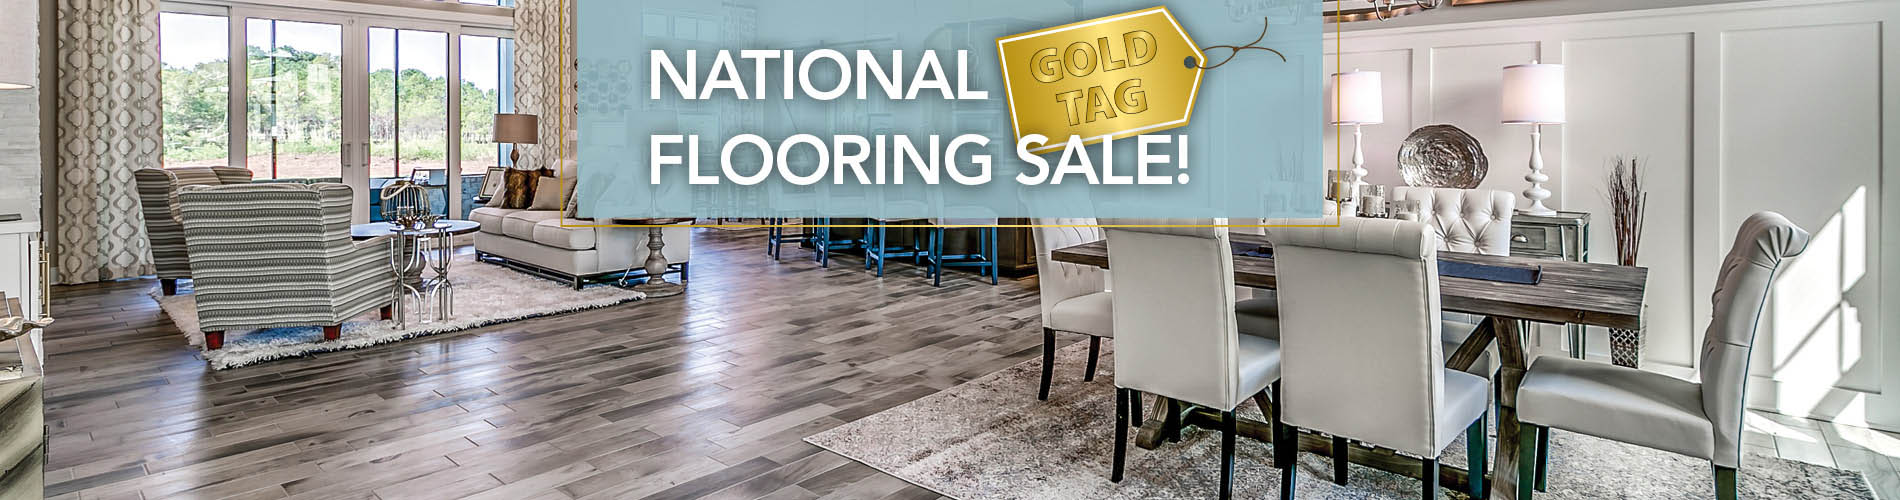 Save big during the National Gold Tag Flooring Sale!